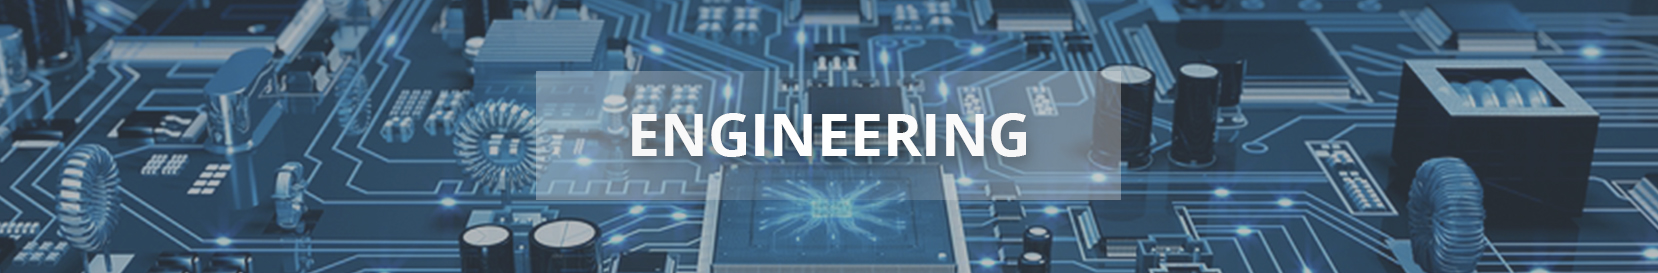 Engineering Banner